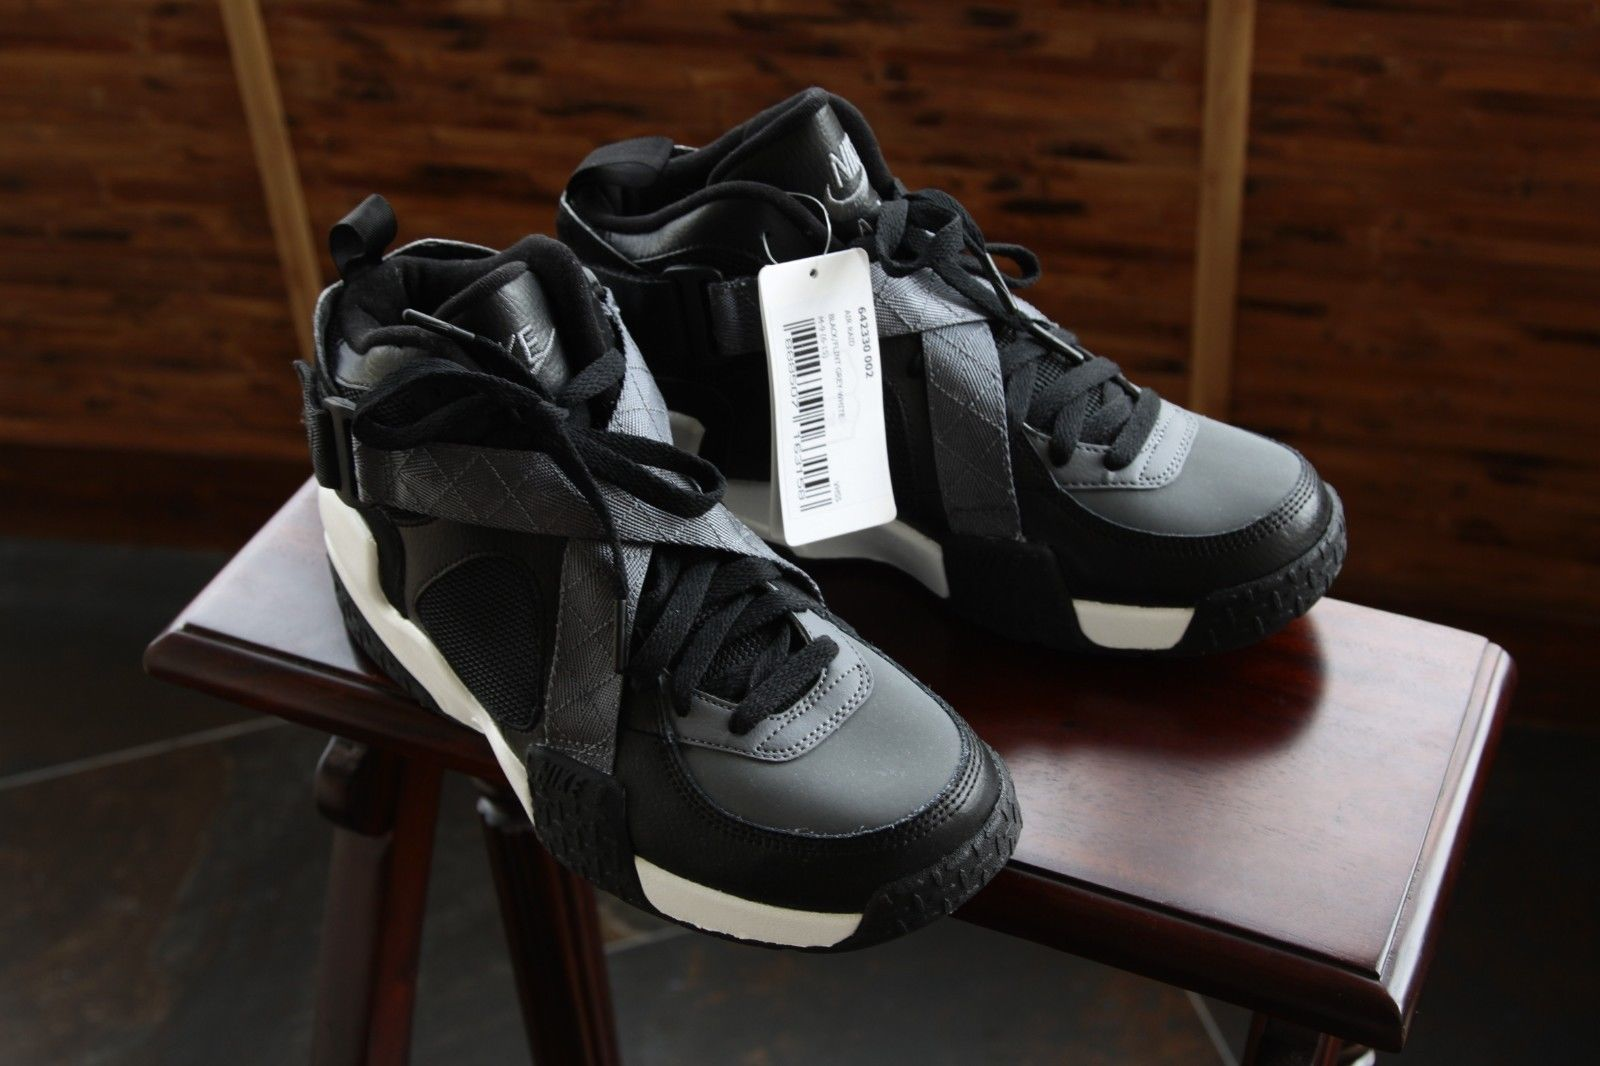 nike-air-raid-black-flint-grey-white-2014-sample-3